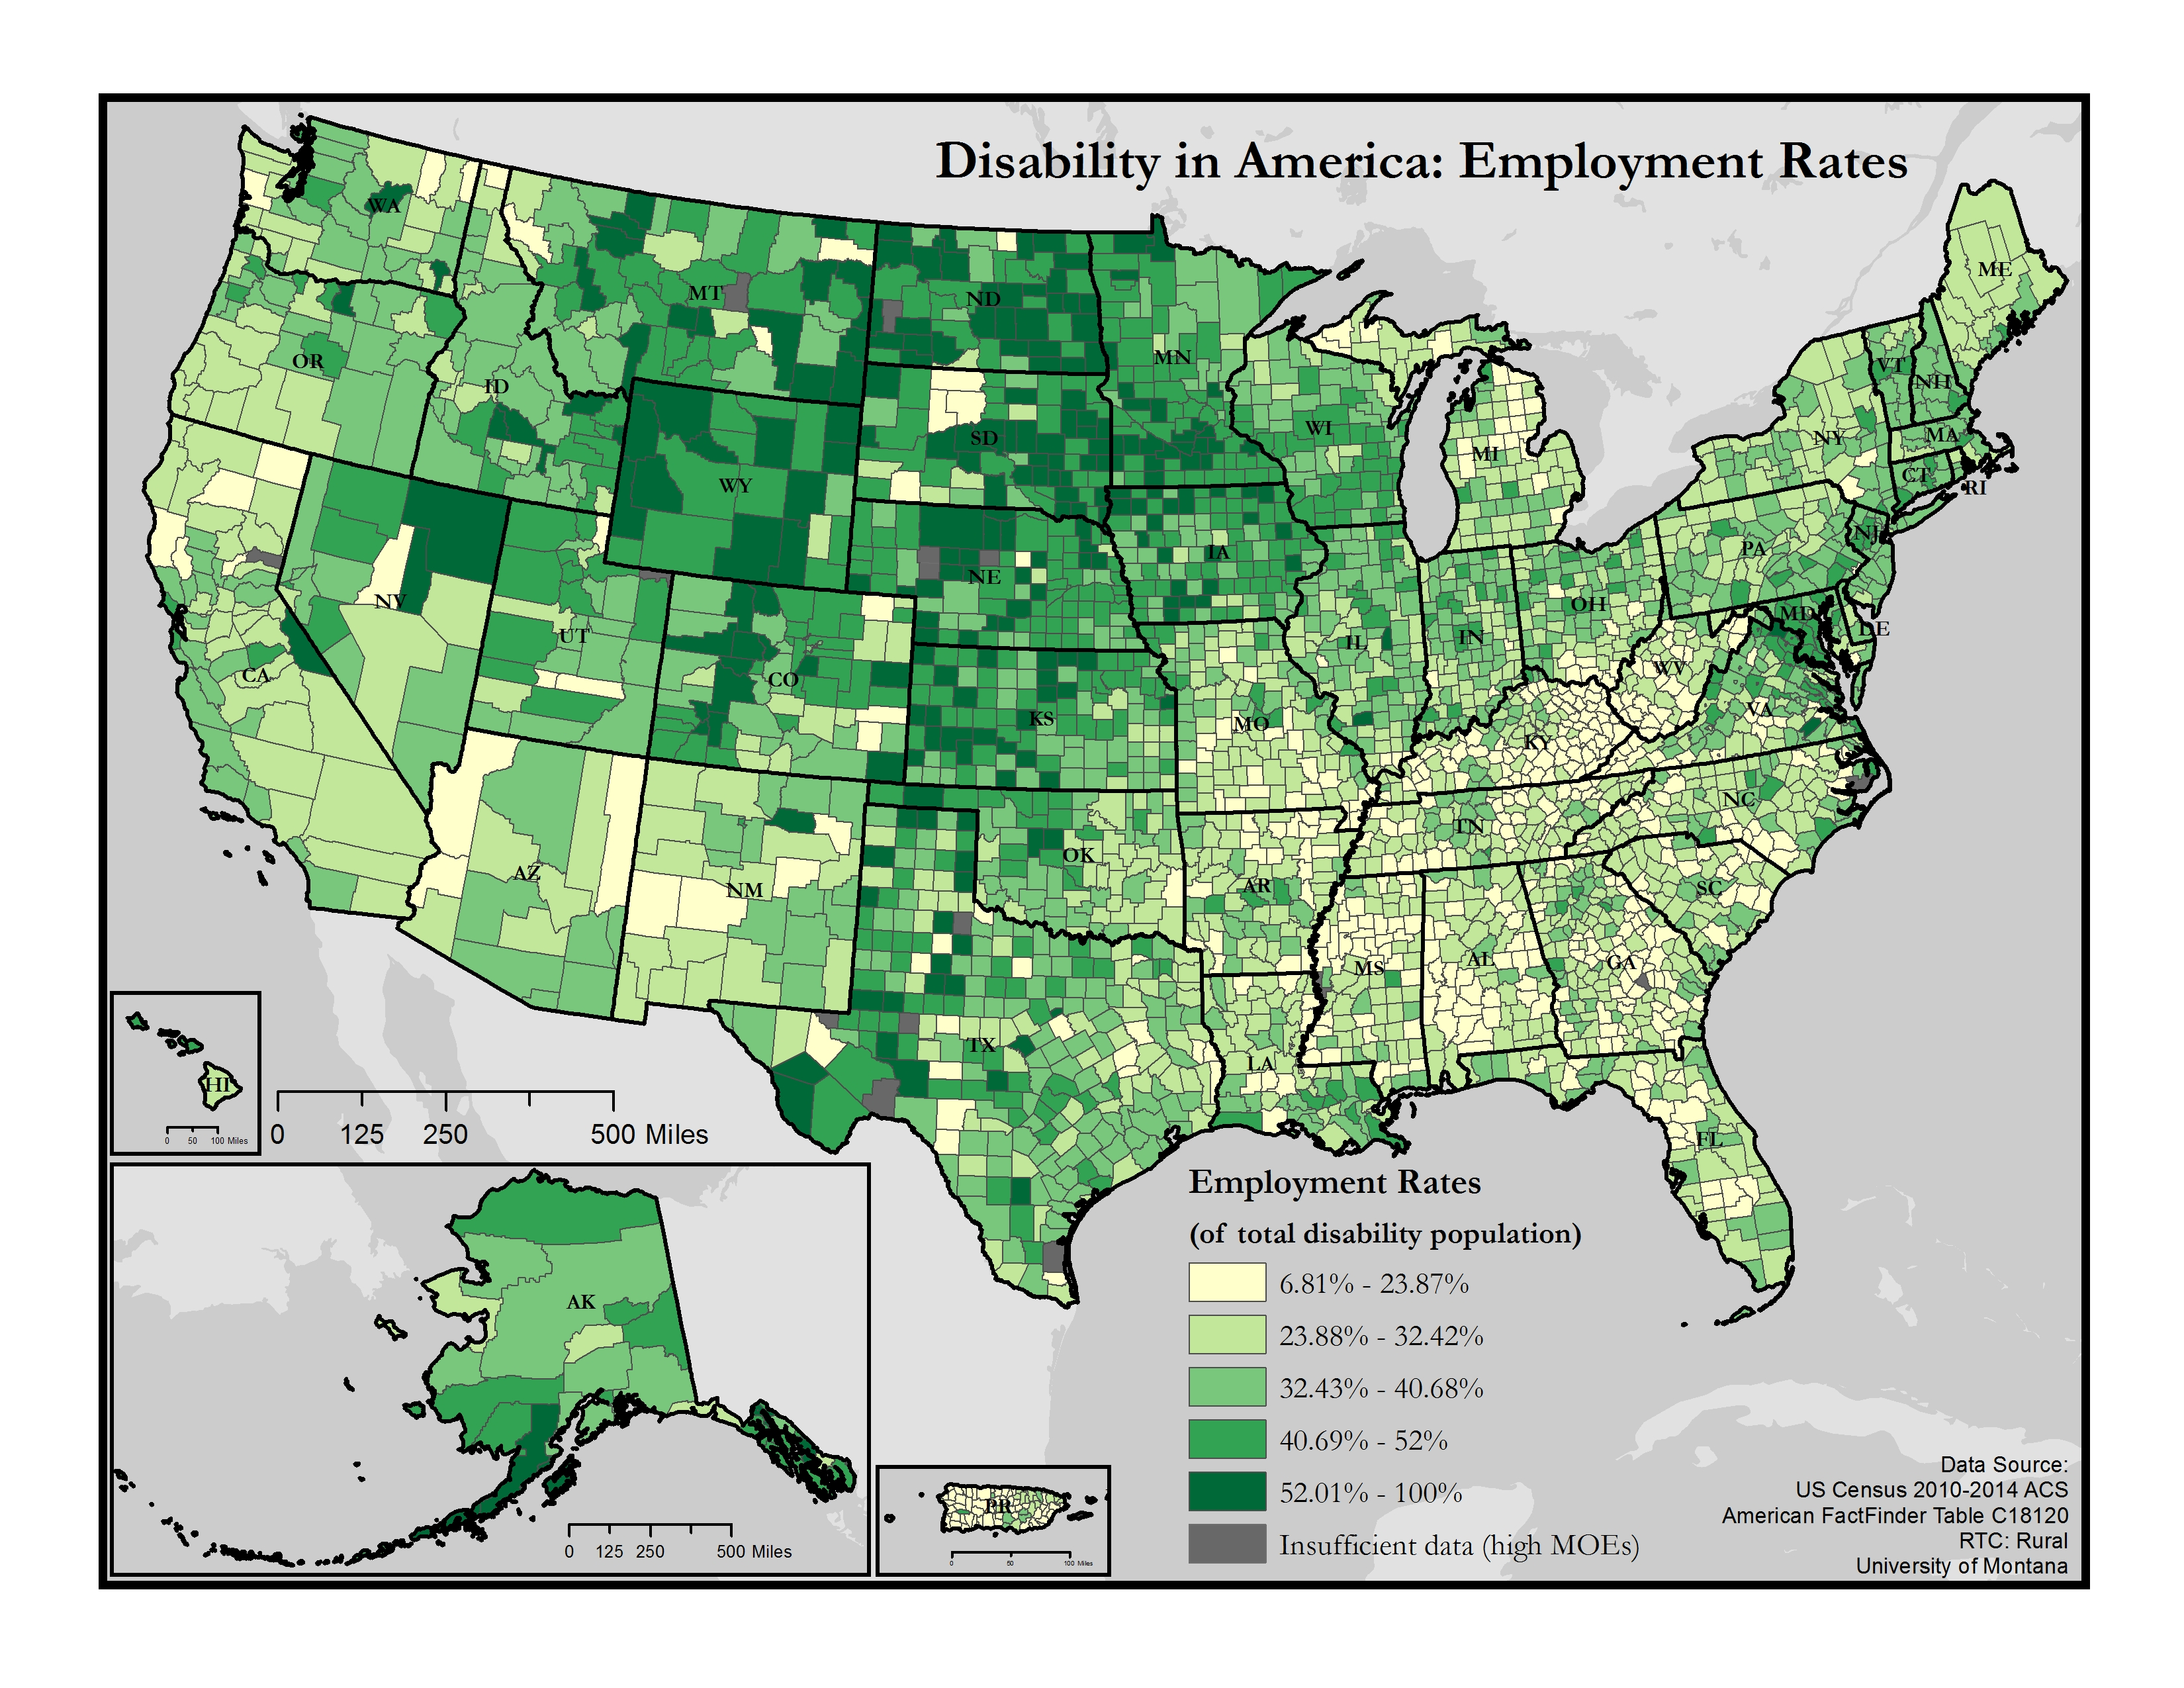 this is a map of the united states which depicts employment rates among people with disabilities